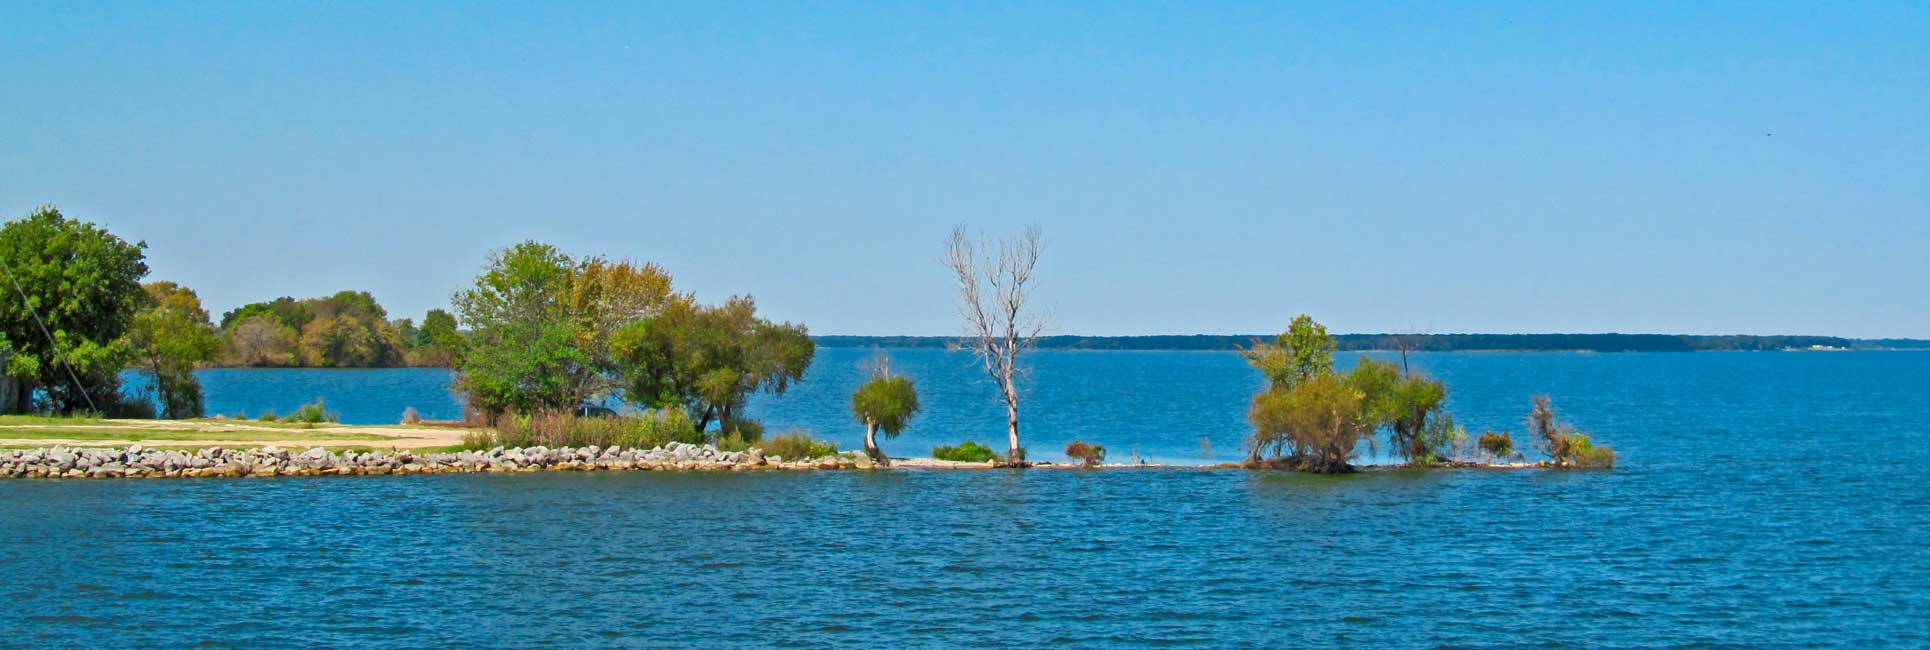 A peninsula with trees and bushes cutting into the water on Lake Tawakoni in Texas.